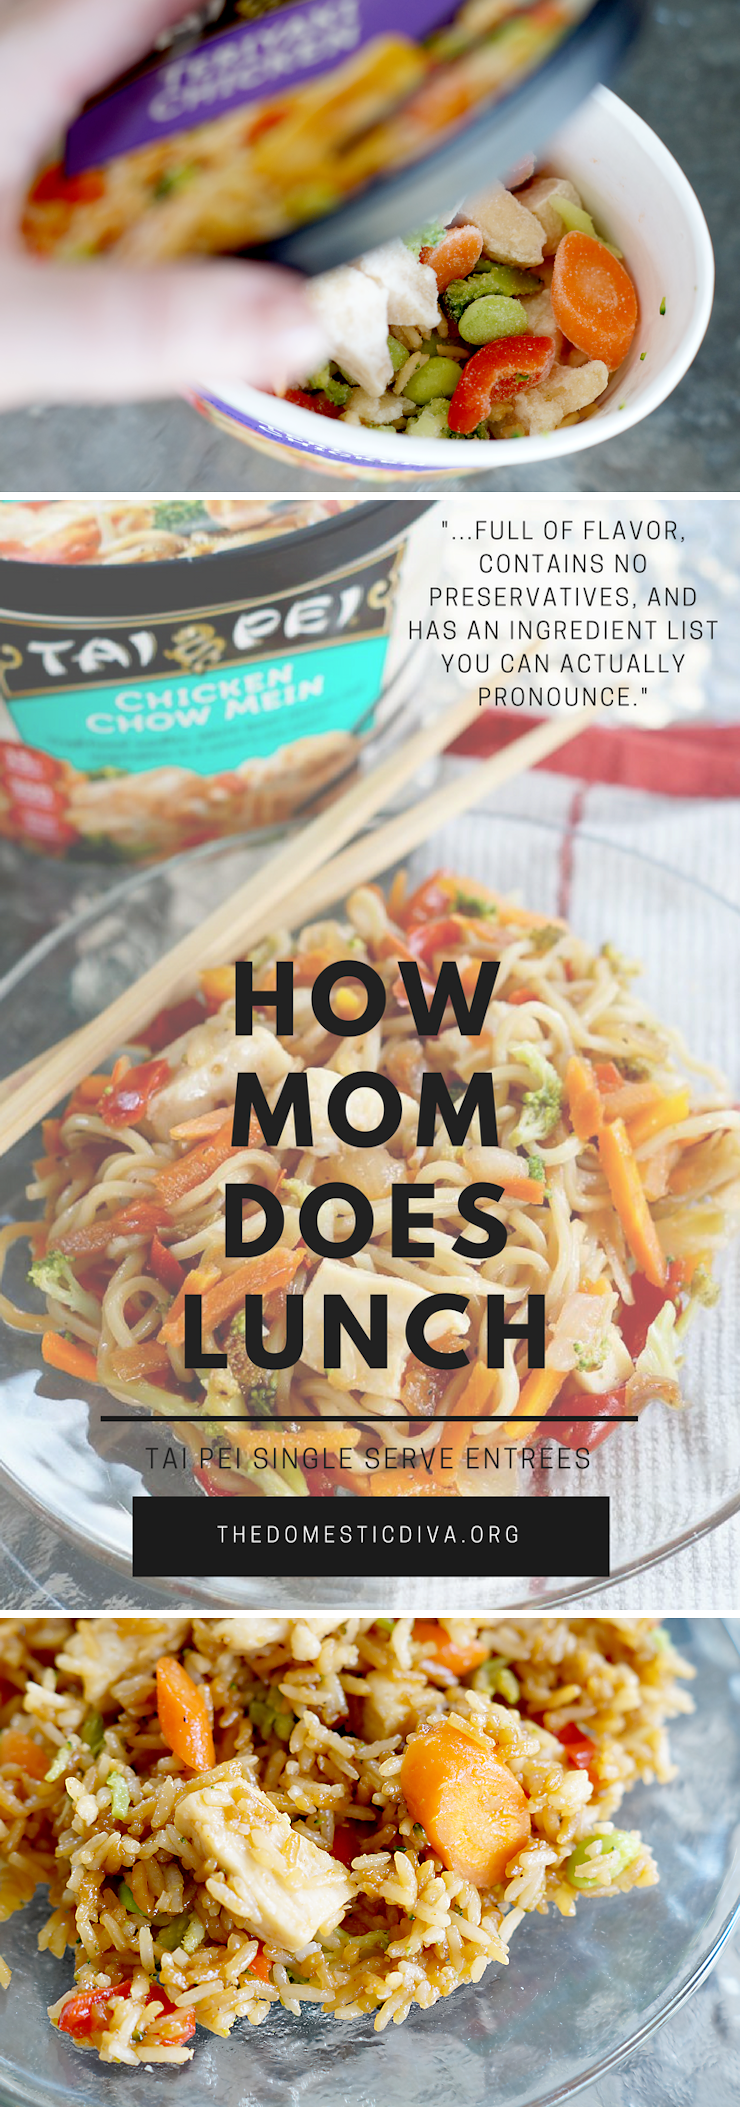 How Mom Does Lunch with Tai Pei Frozen Single Serve Entrees (review plus giveaway) #homeschool #mom #lunch #quicklunchideas